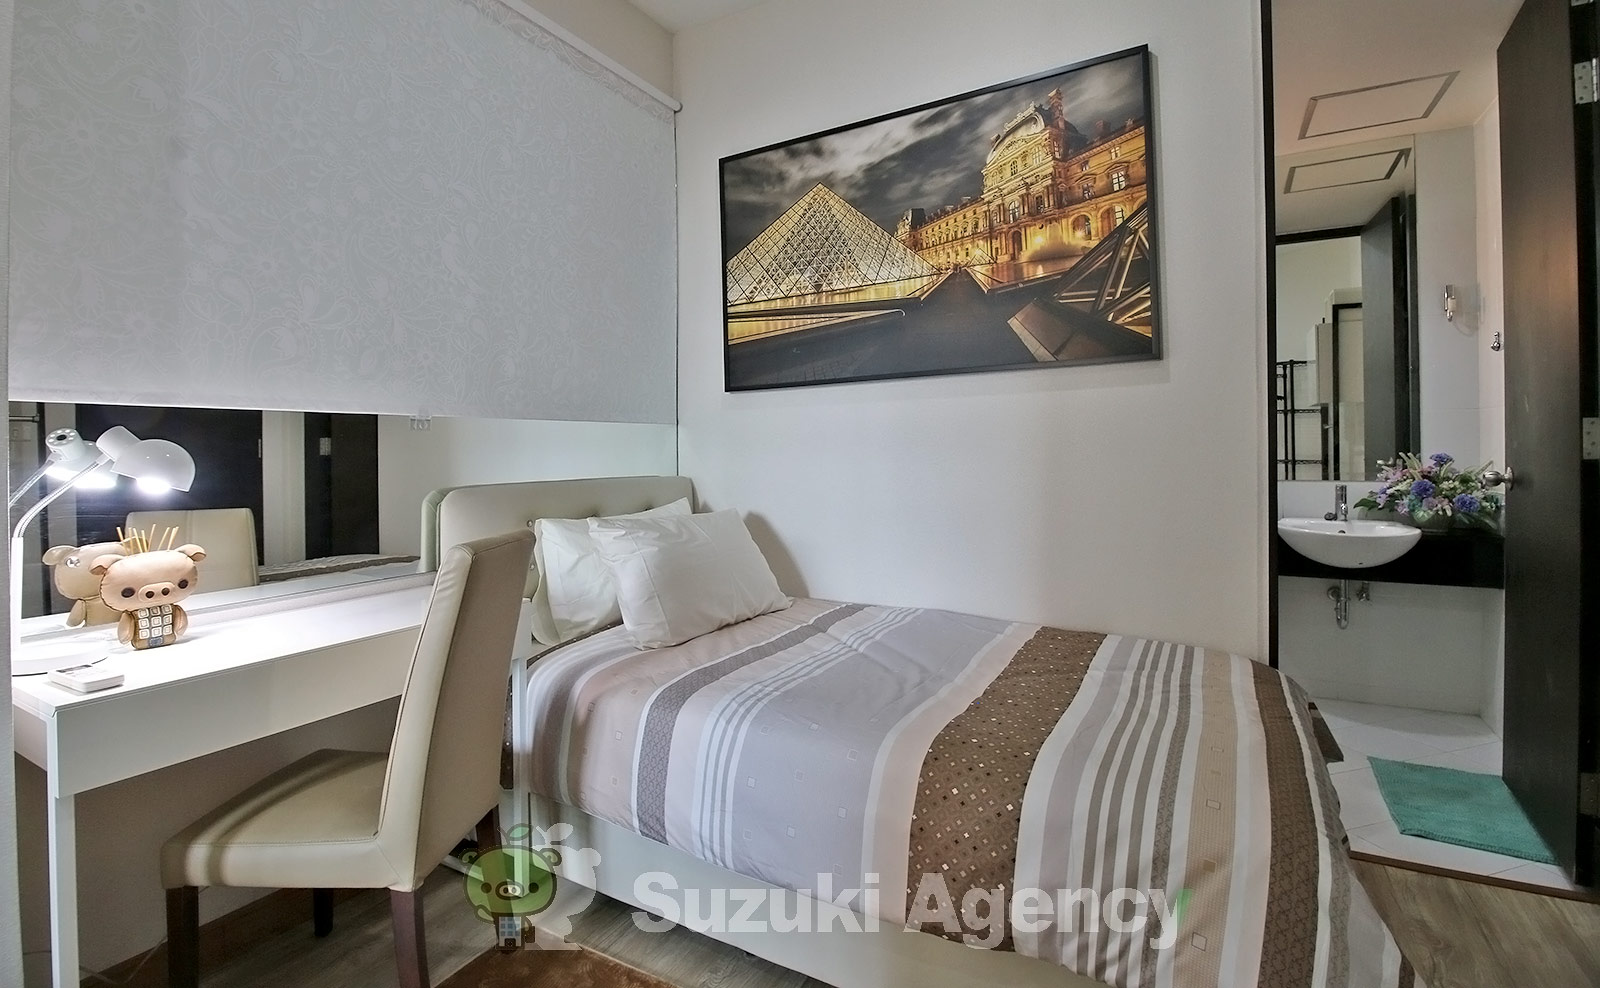 Citi Smart Condo:2Bed Room Photos No.9